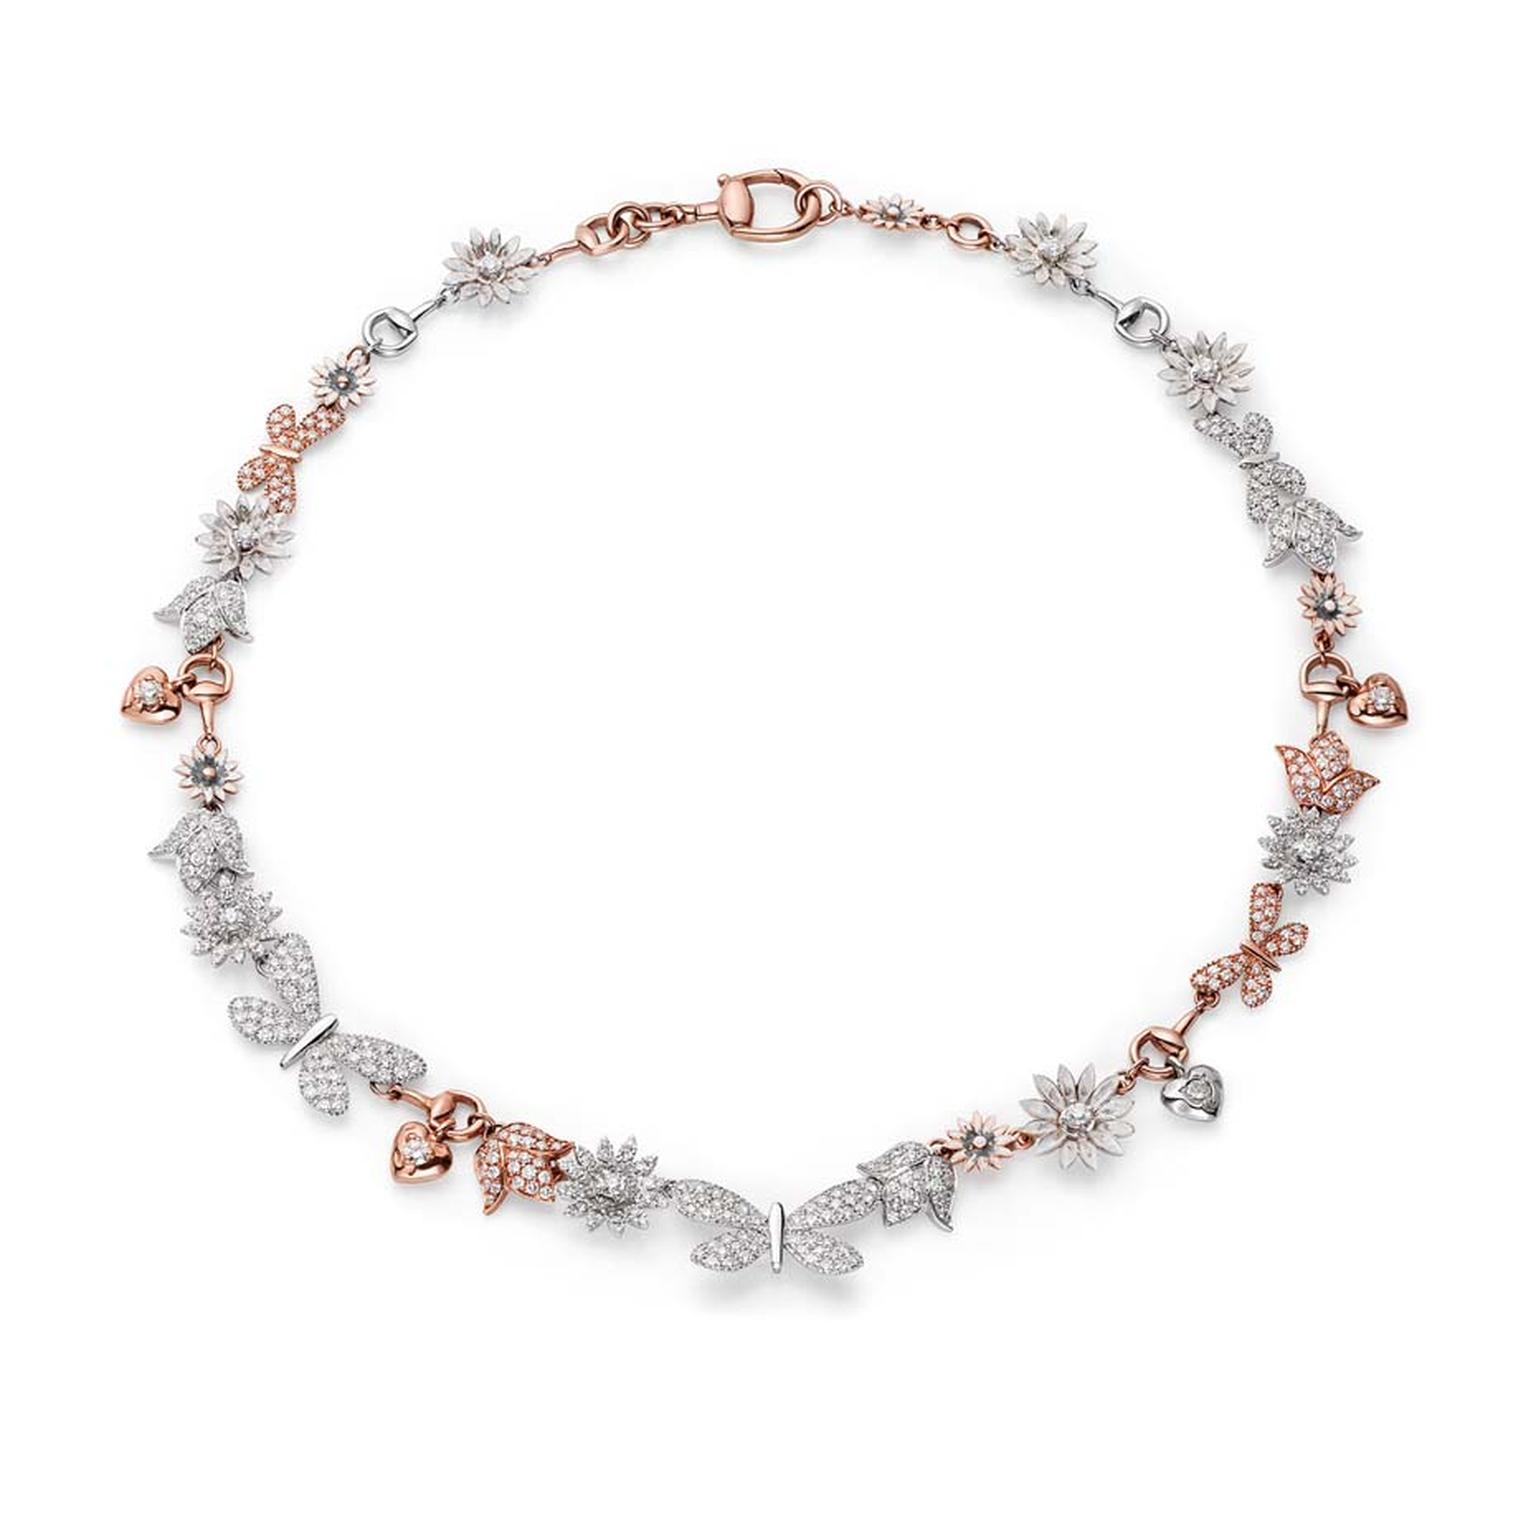 Limited-edition Gucci necklace from the new Flora collection, set with 512ct of diamonds shaped into flowers, butterflies and hearts on white and rose gold.